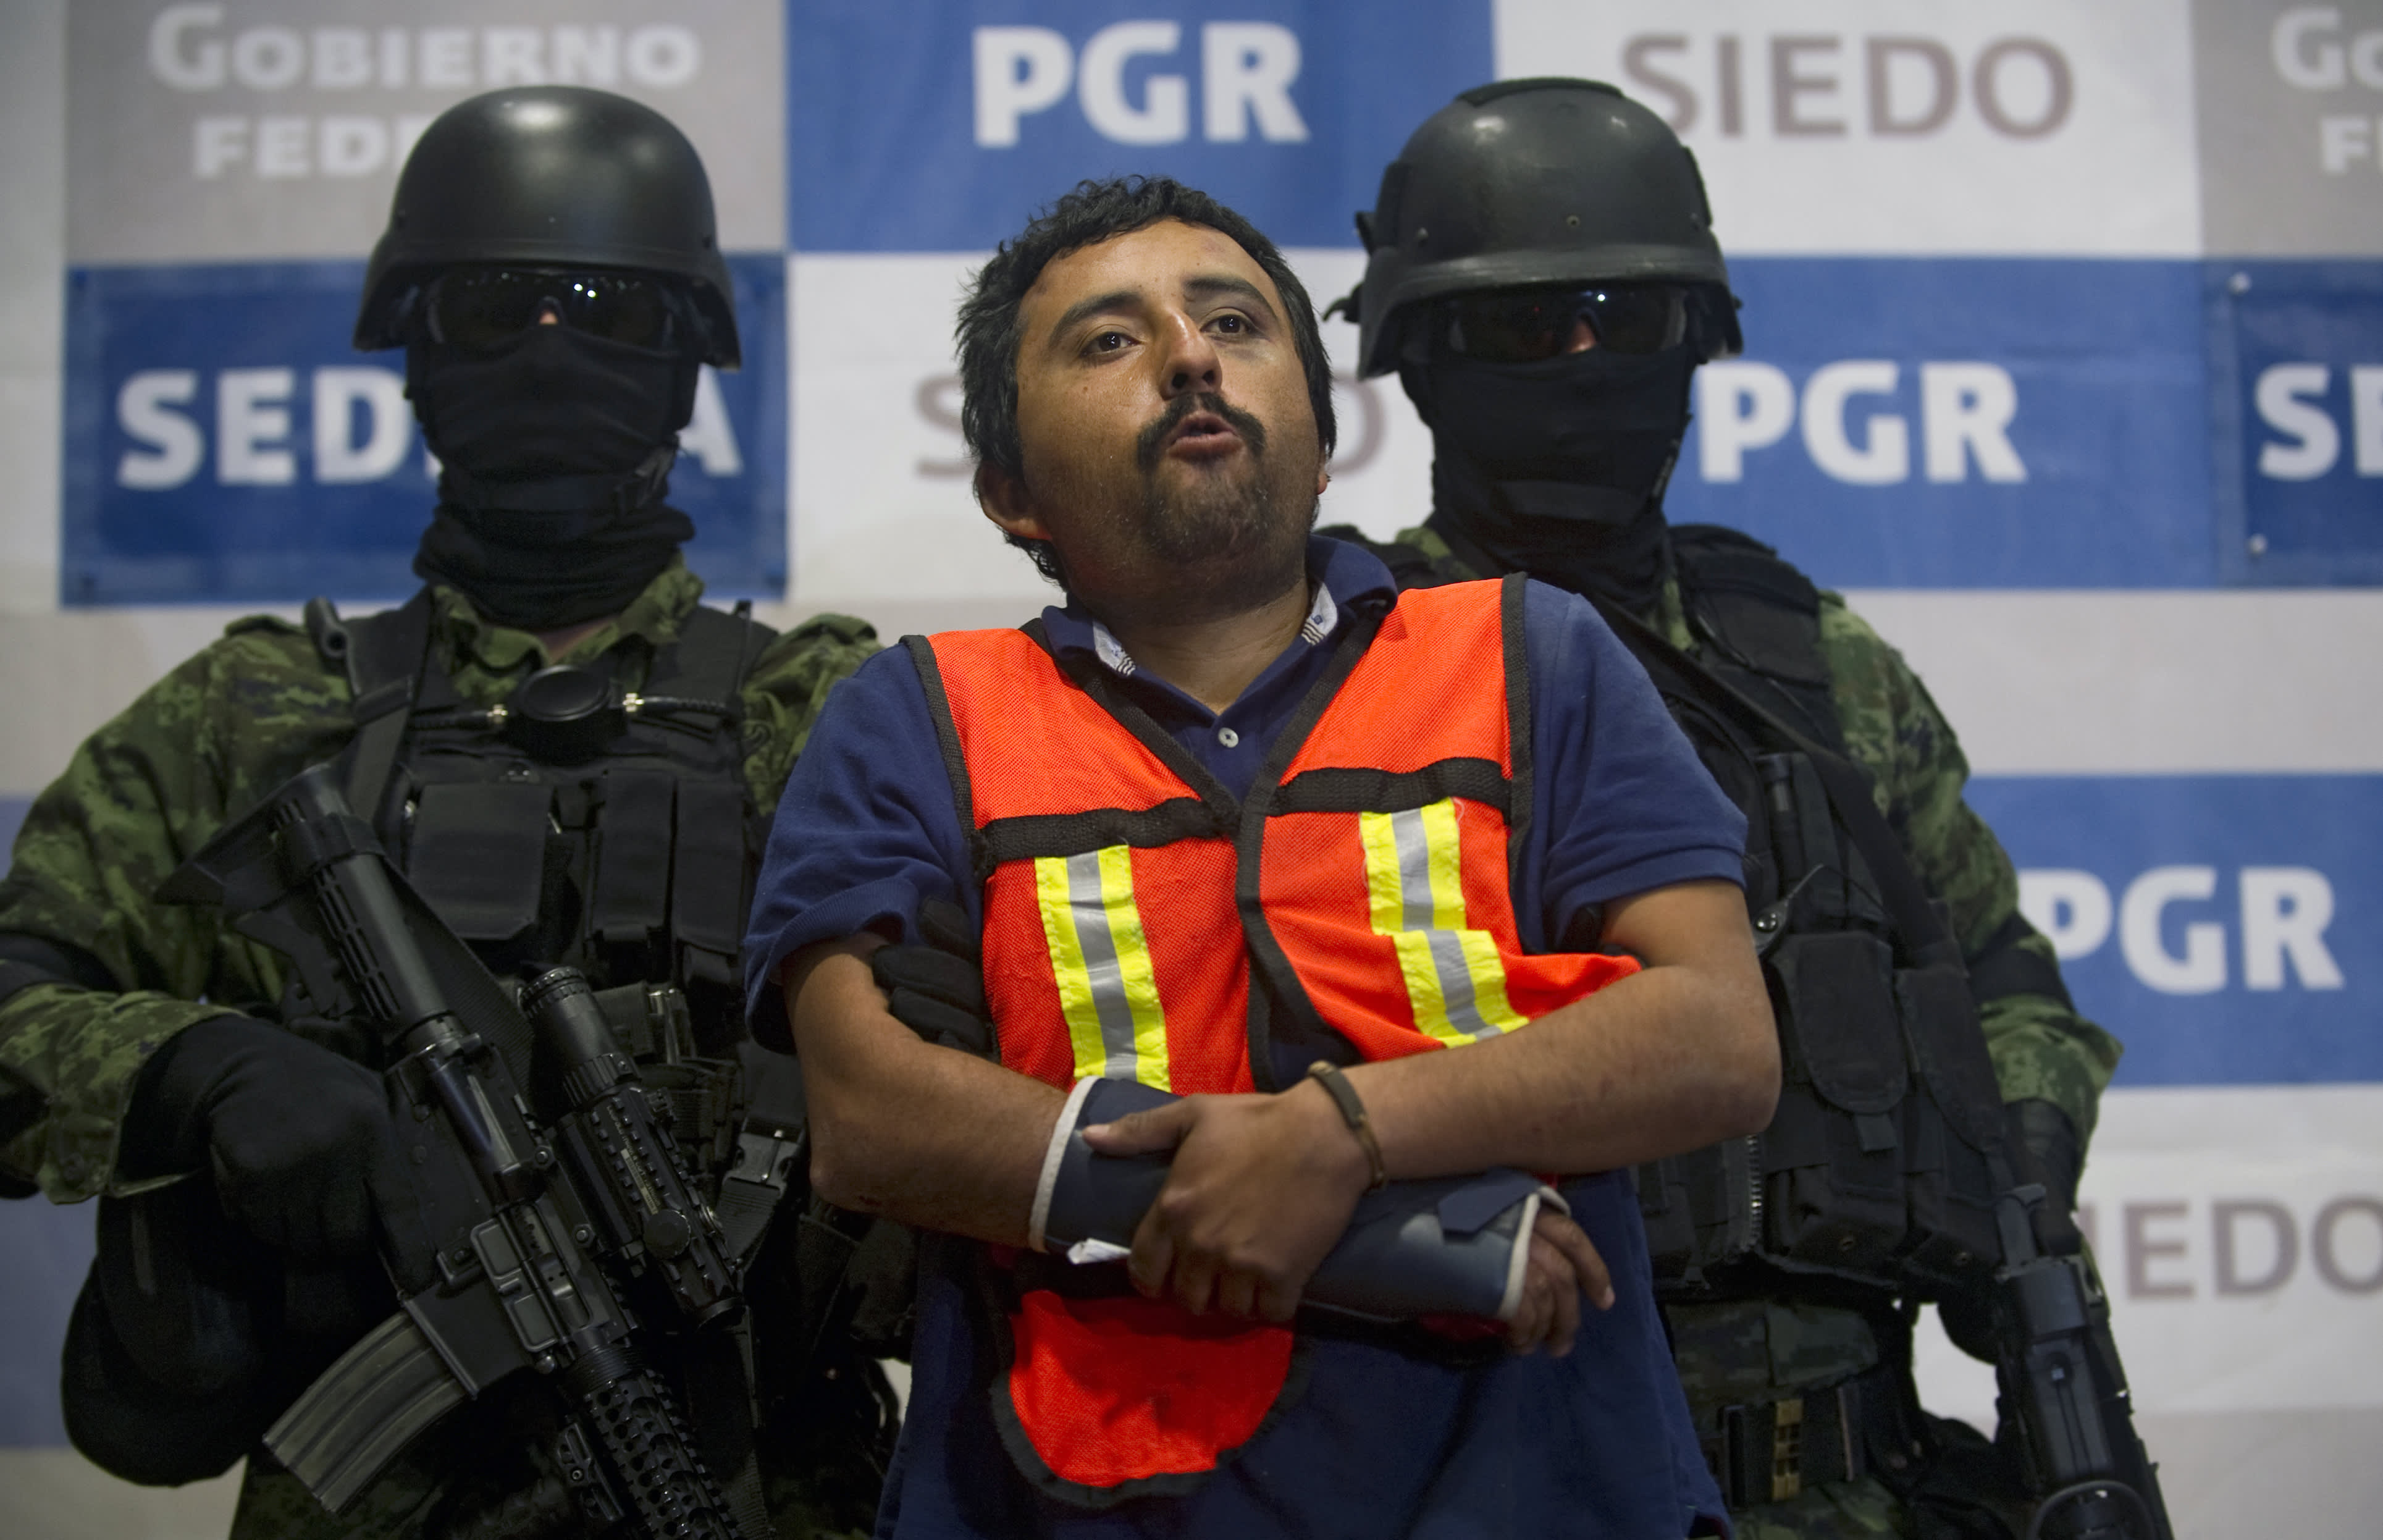 mexico s most feared drug cartel enters coal mining business